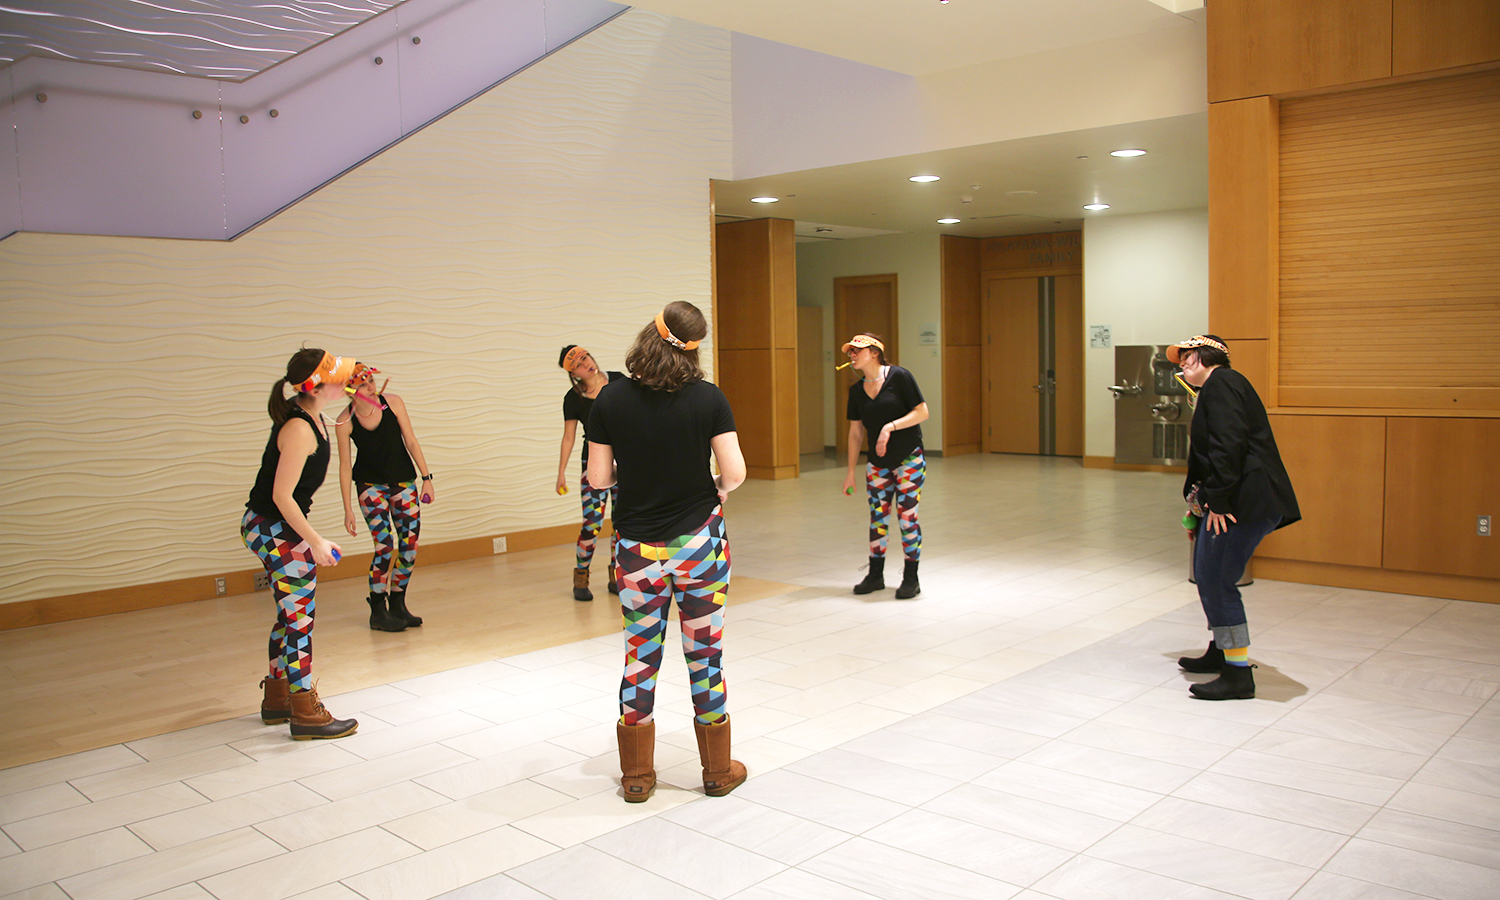 At the final destination of the performance in the Gearan Center for the Performing Arts, Chenkovich dances to the clarinet music being played with the other student organizers.